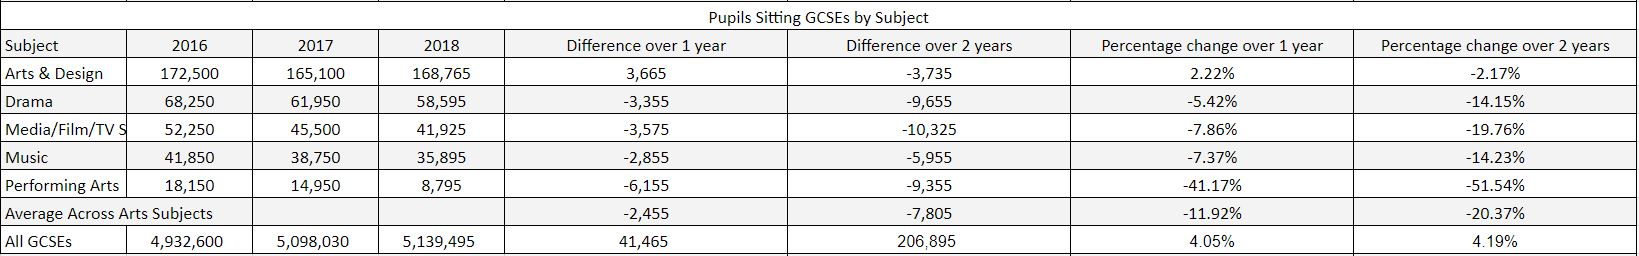 Pupils Sitting GCSEs by Subject